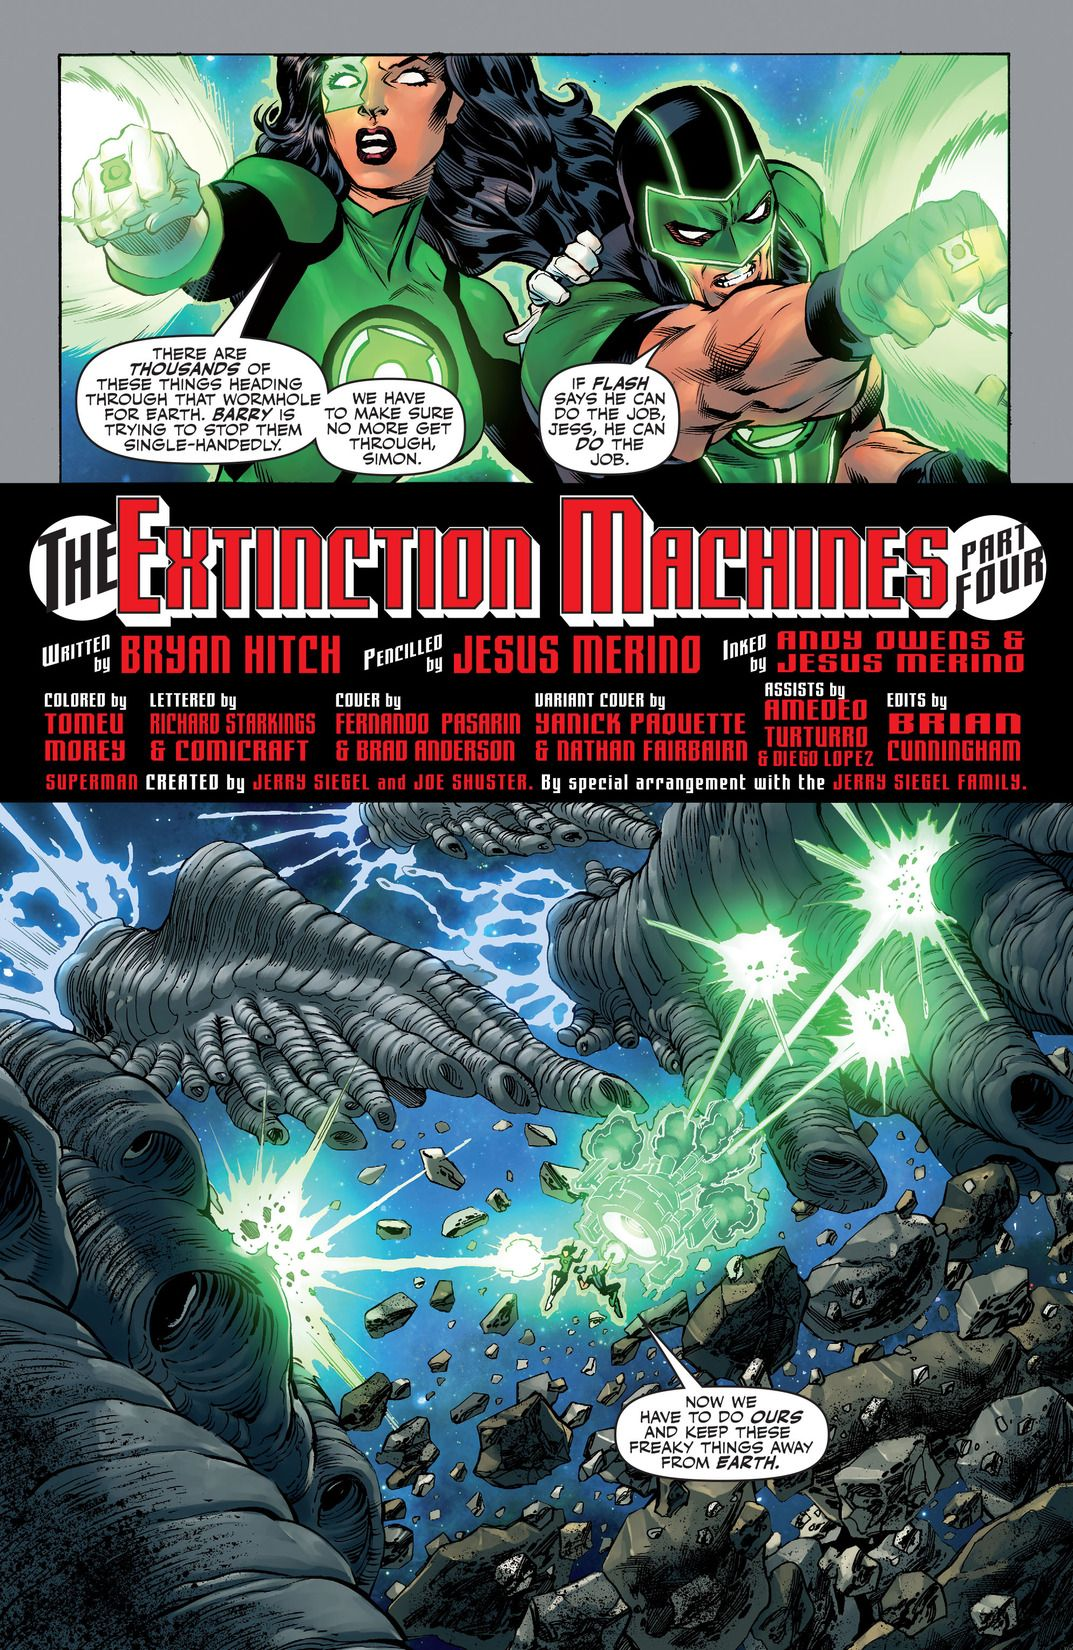 Justice League: The Extinction Machines (Comic) Review 4